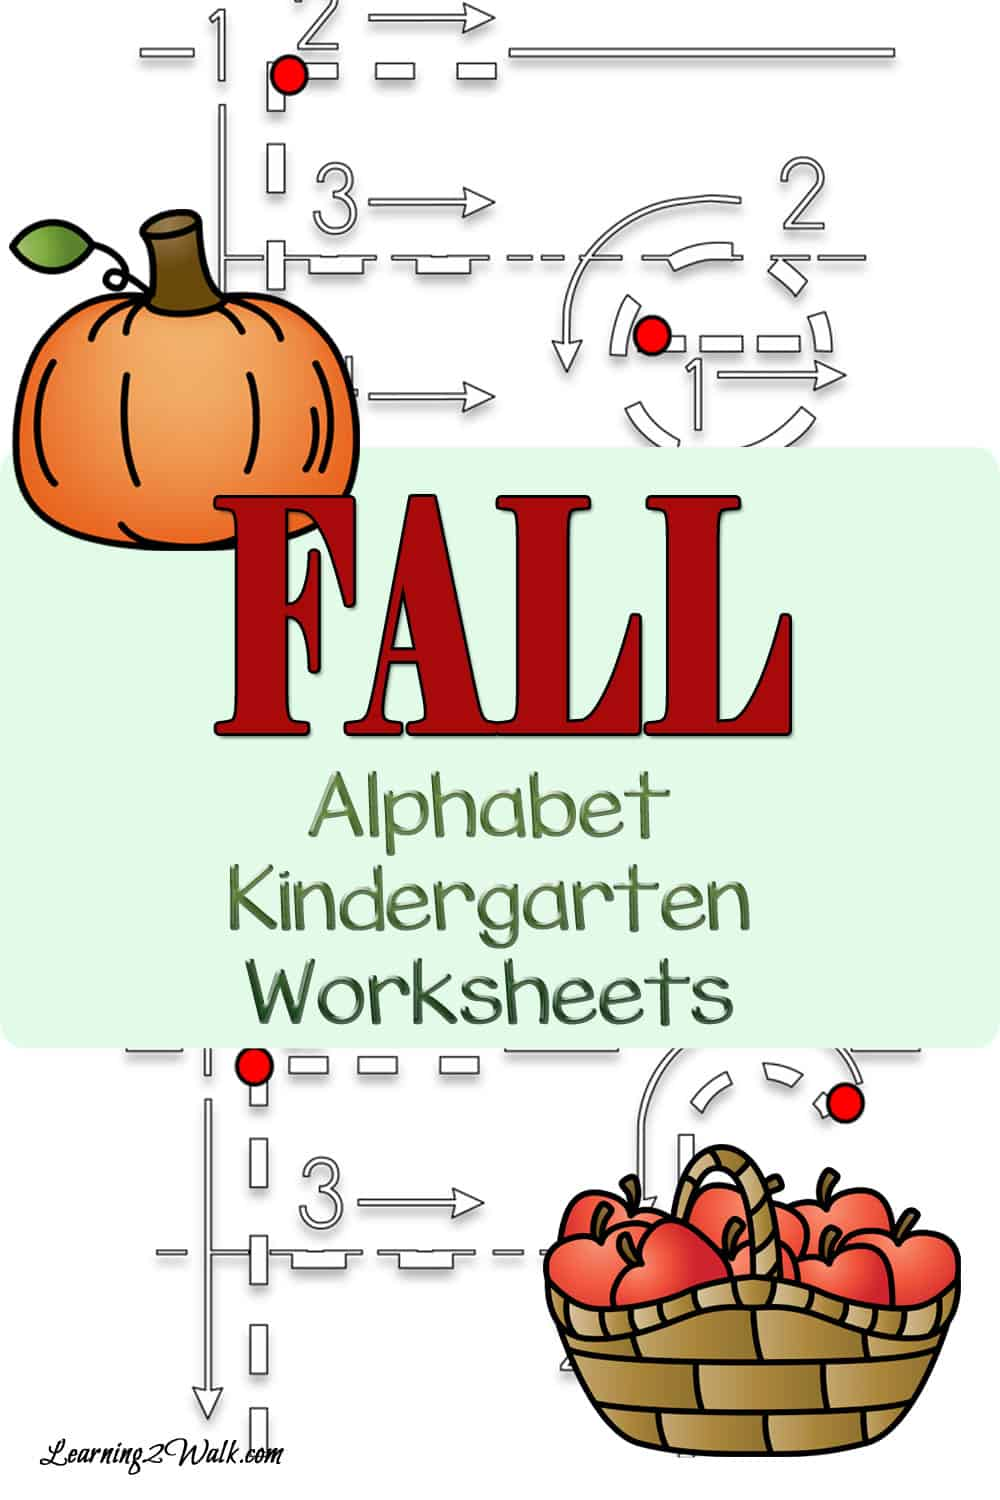 math worksheet : fall alphabet kindergarten worksheets : Fall Kindergarten Worksheets